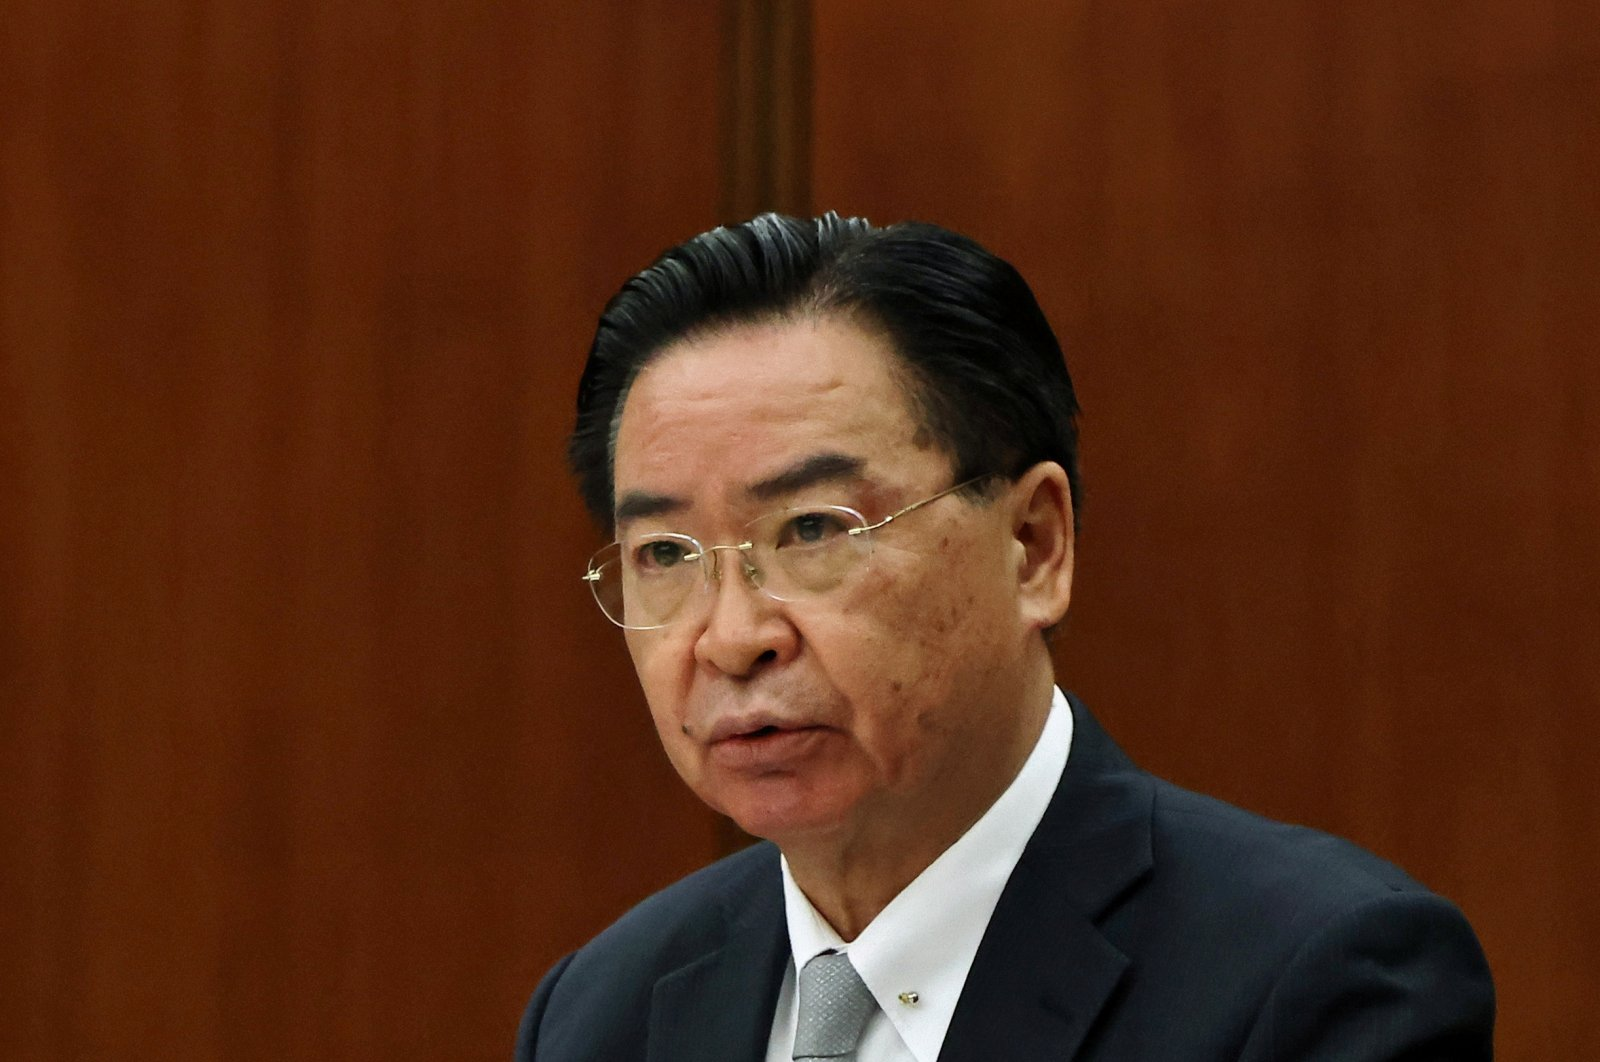 Taiwan Foreign Minister Joseph Wu attends a news conference for foreign journalists in Taipei, Taiwan, April 7, 2021. (Reuters Photo)